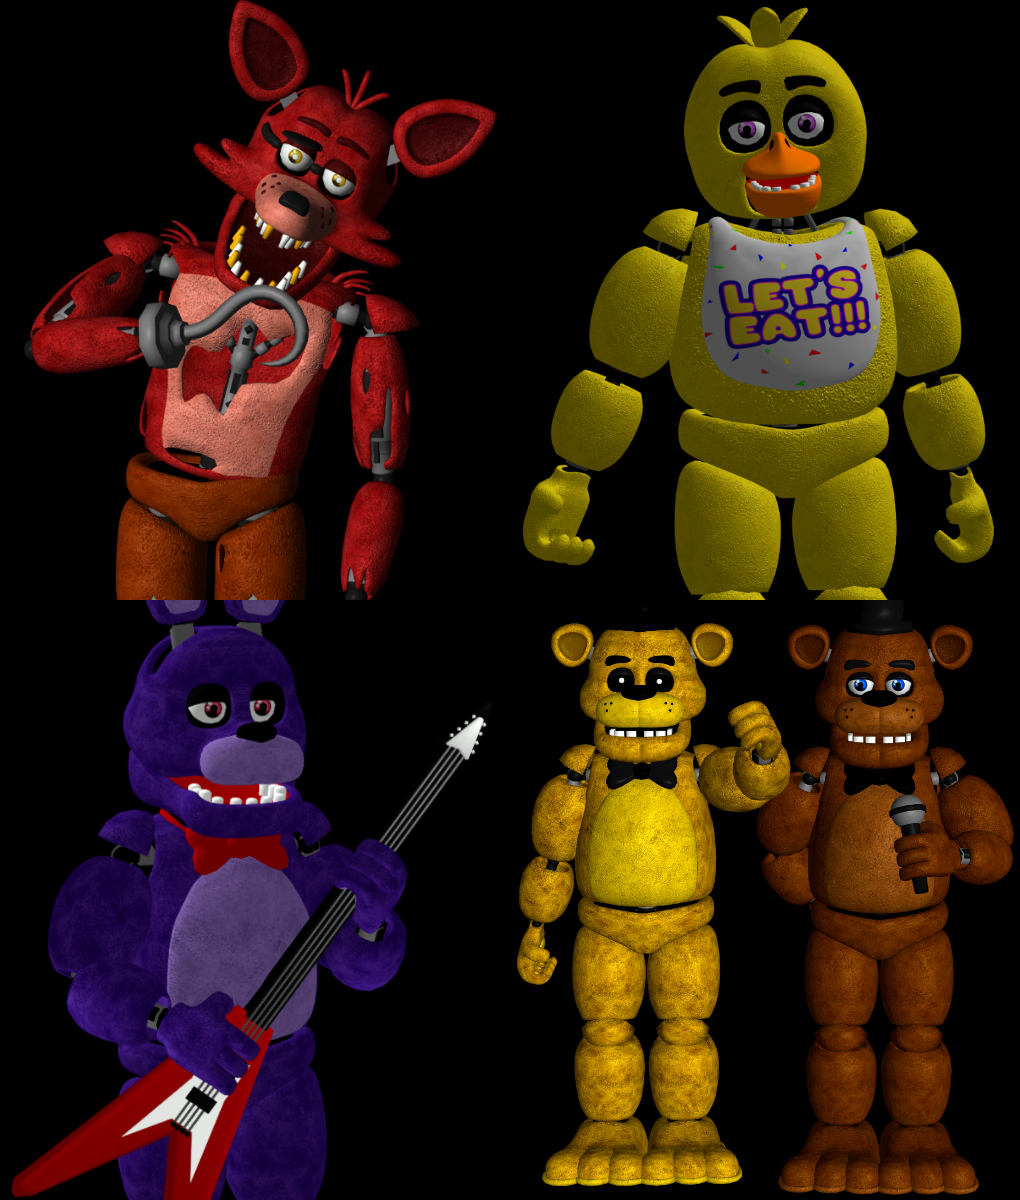 FNAF 1 Animatronics Pack By RealMoonlight On DeviantArt